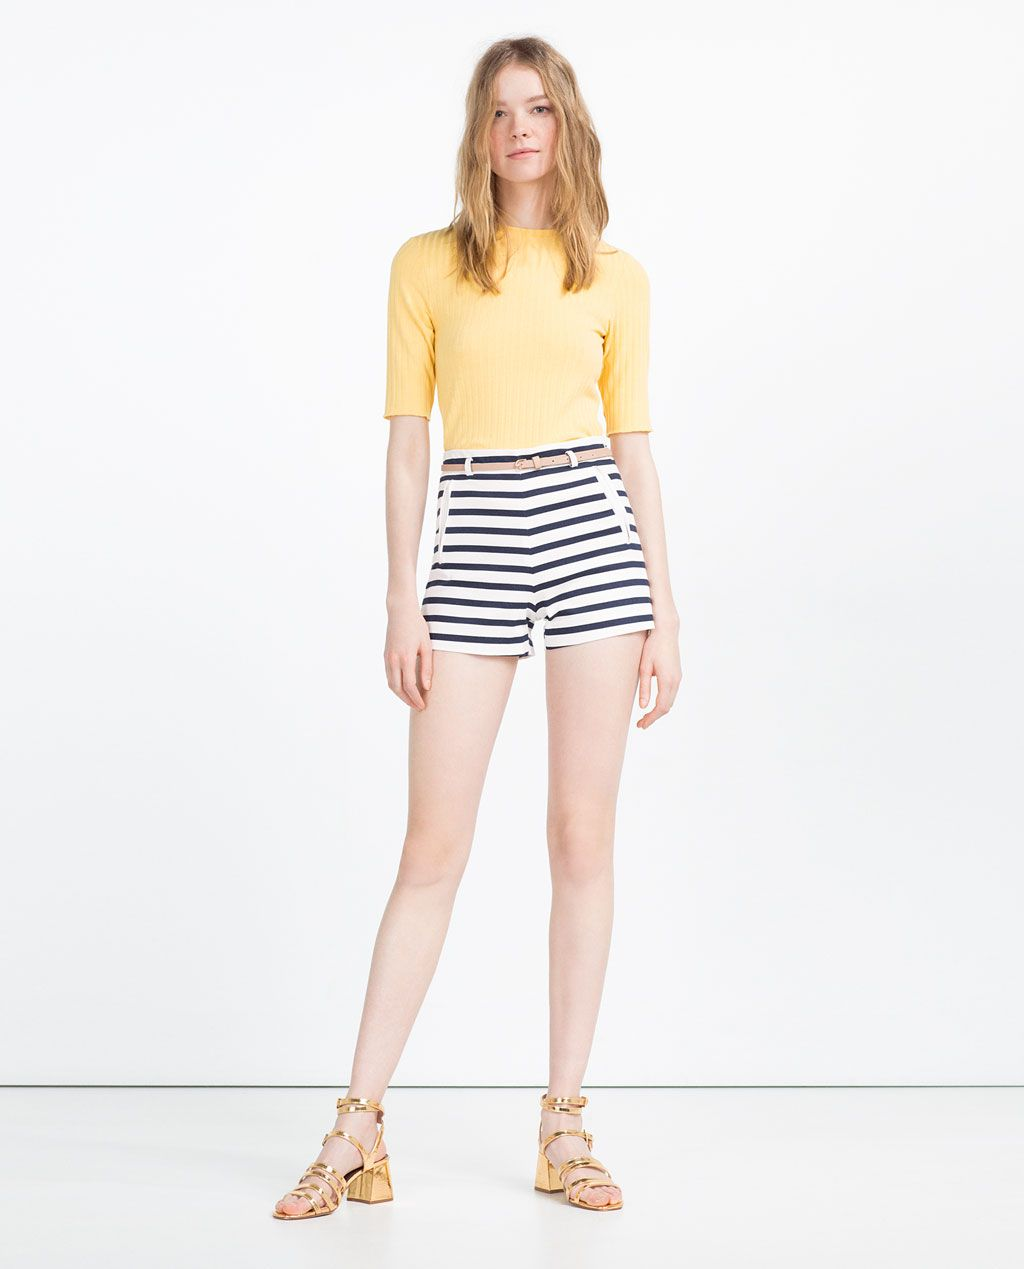 843fdda5a1 STRIPED BERMUDA SHORTS WITH BELT - Available in more colours   Just ...